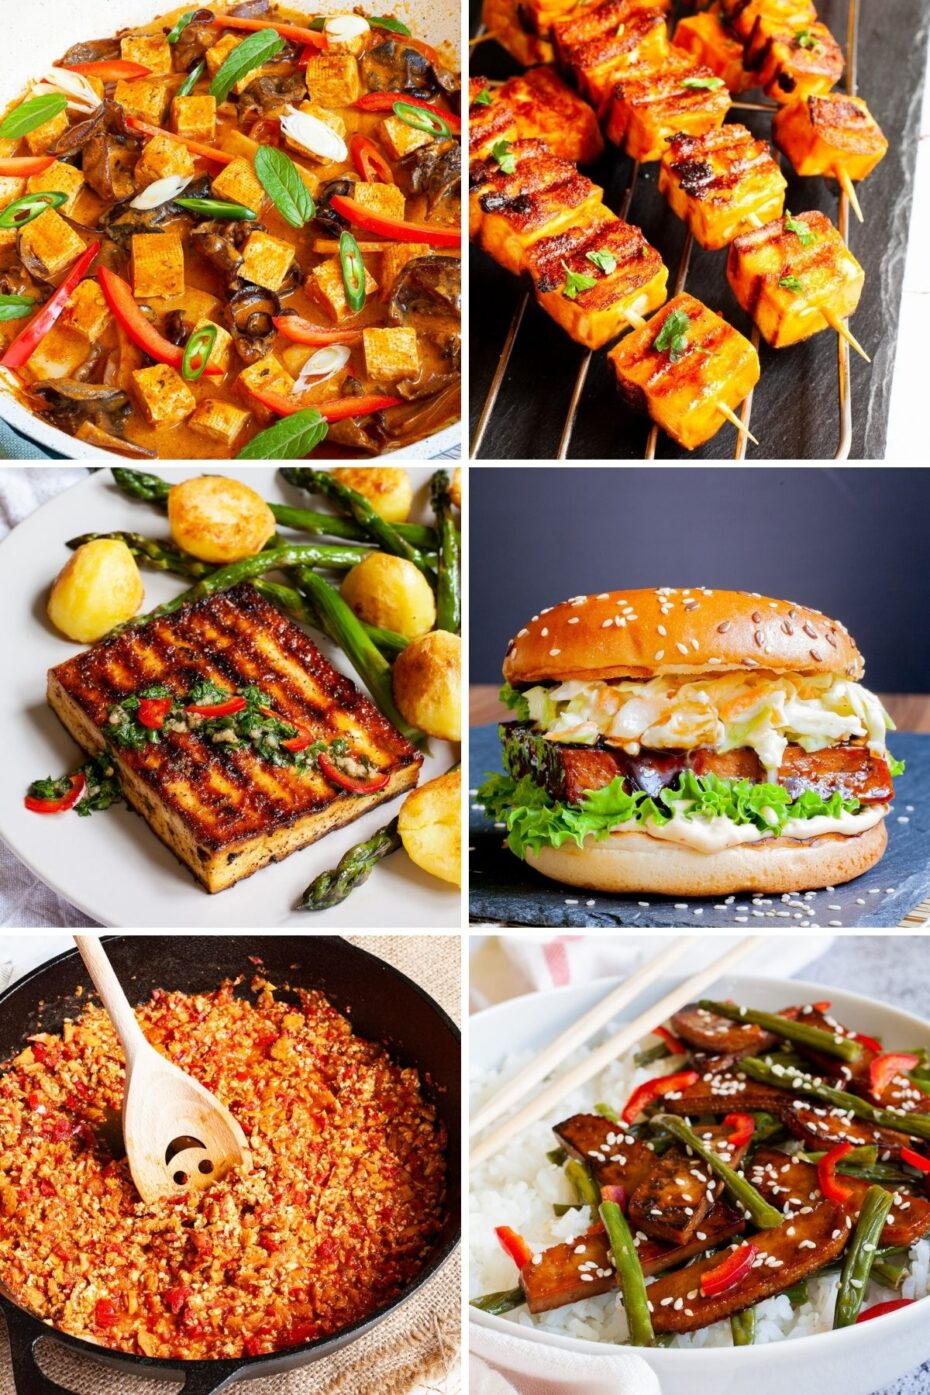 5 photo collage of different tofu dishes there is a curry, a skewer, a burger, a steak, a stew and a stir-fry dish